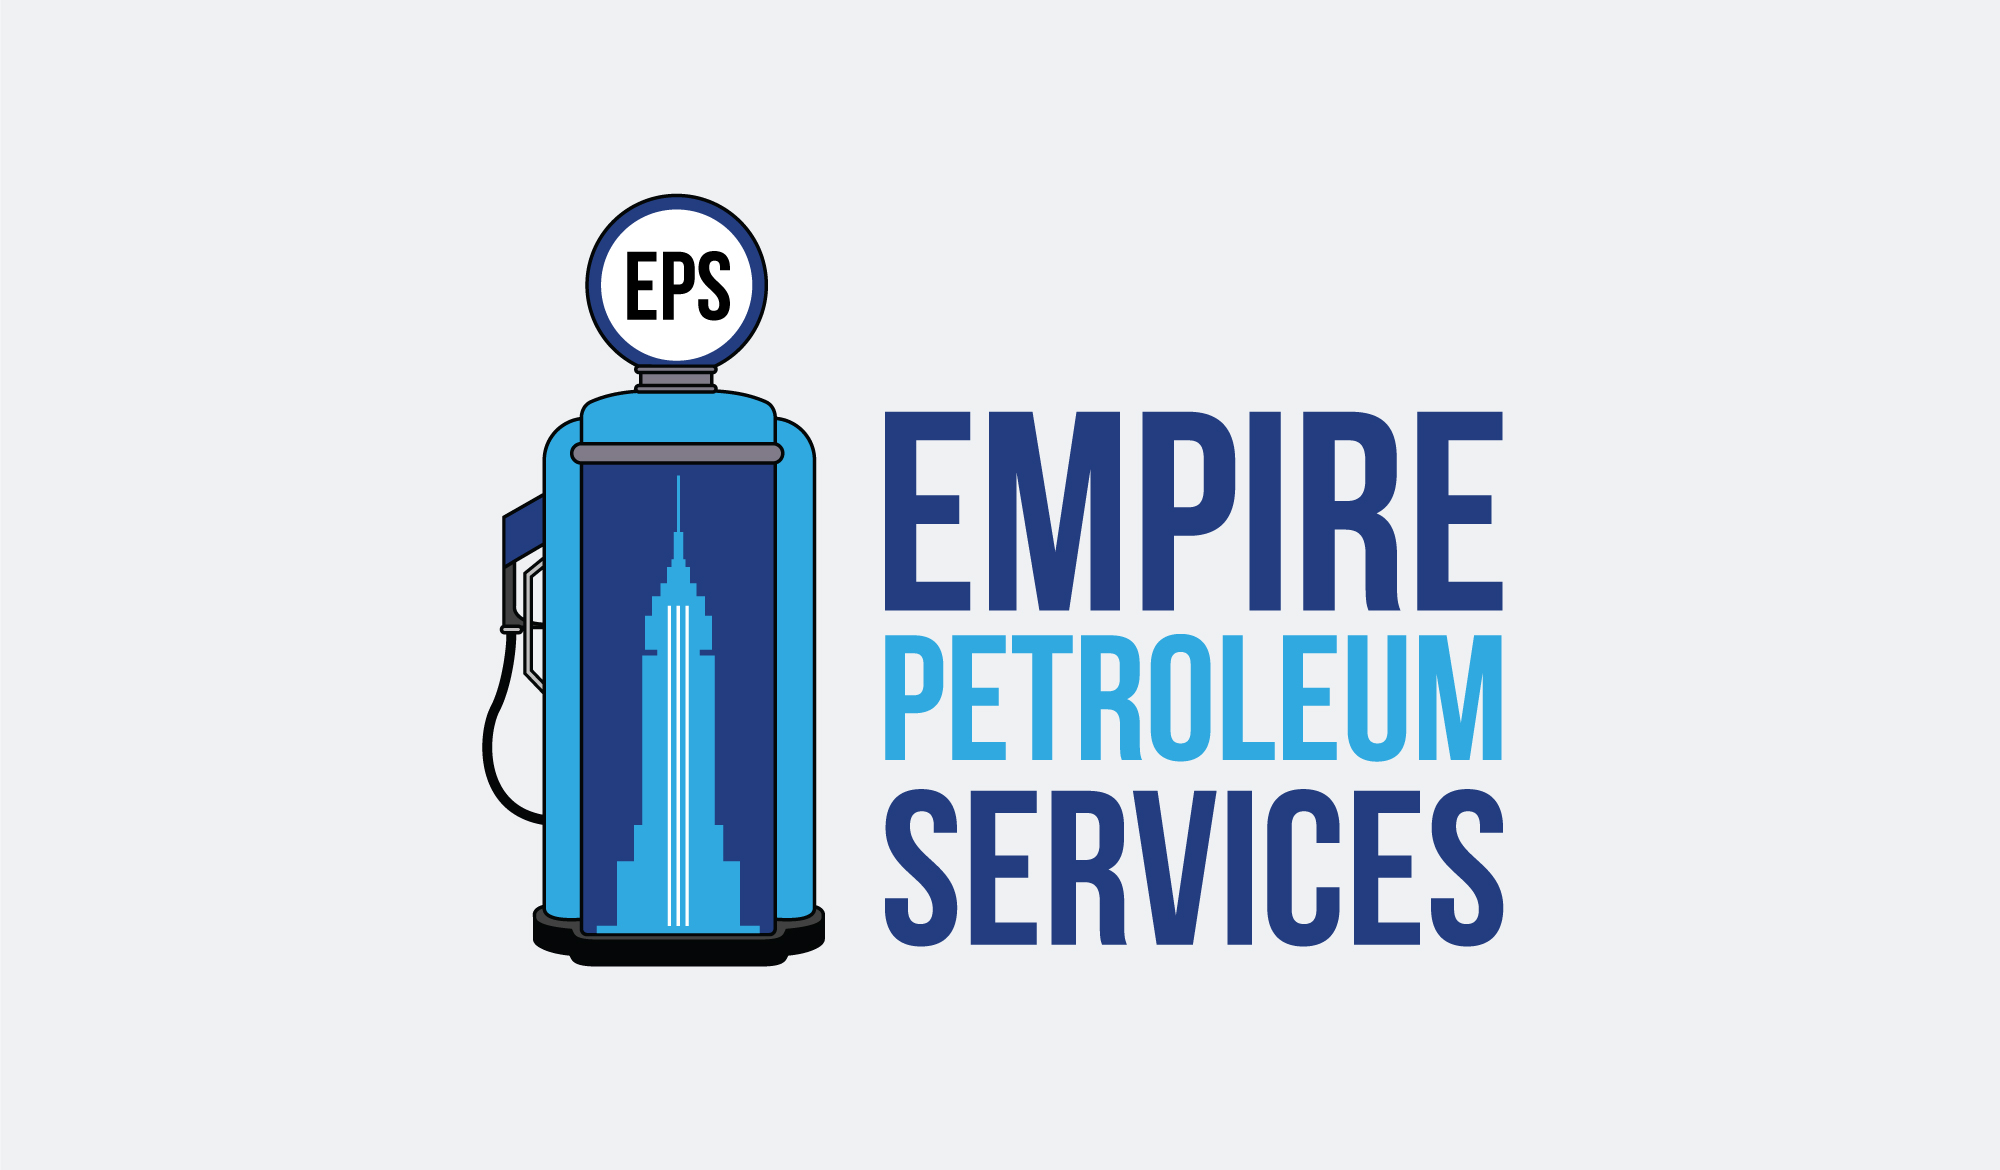 Empire Petroleum Services Alternate Logo